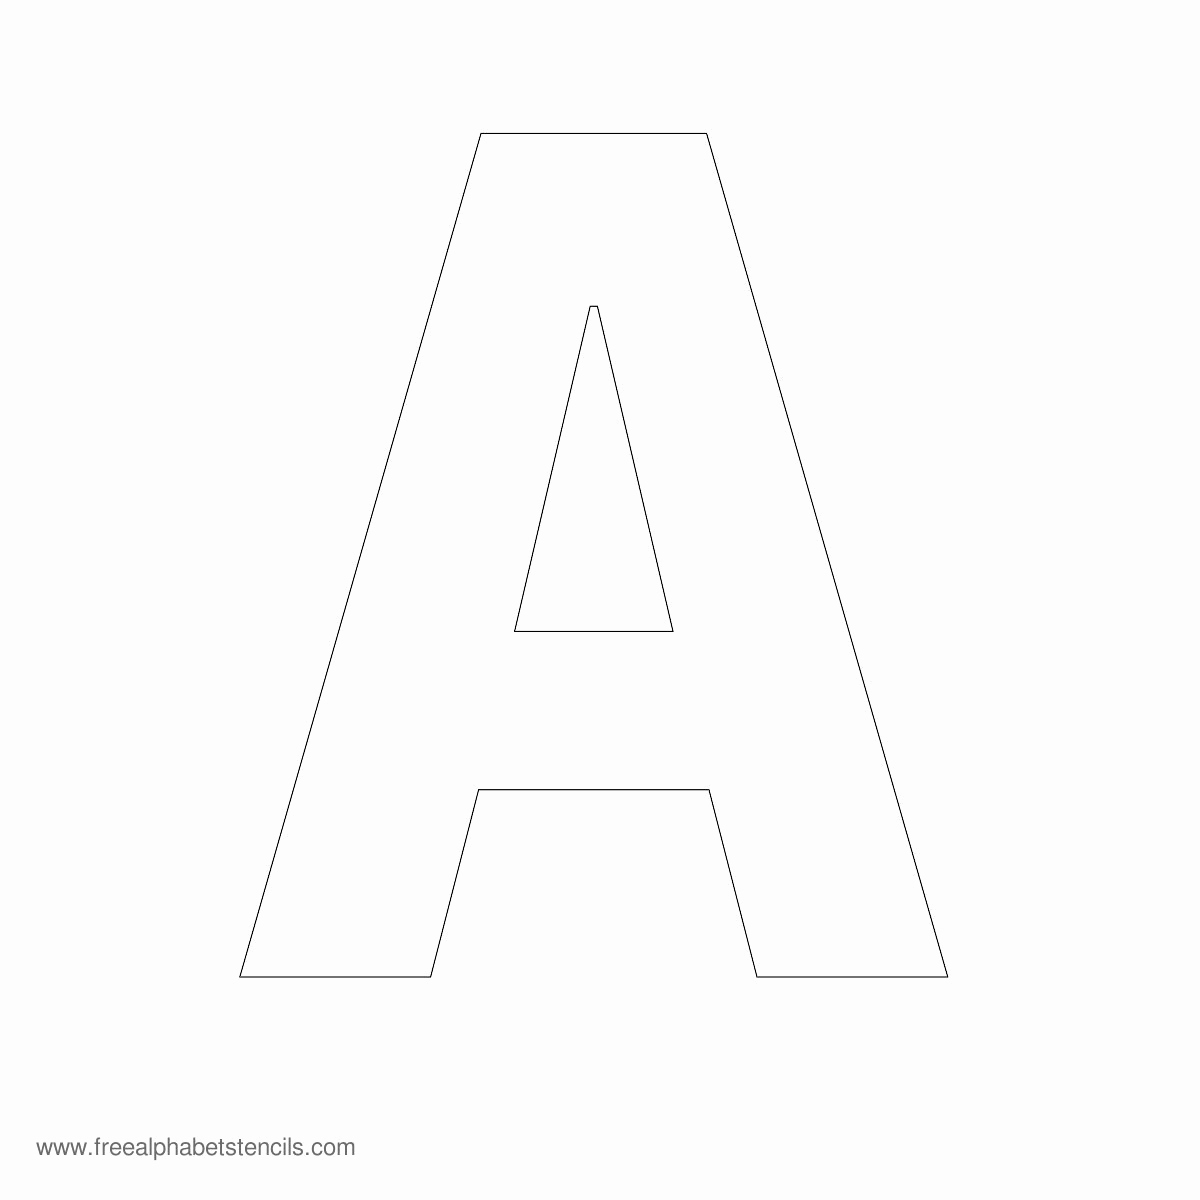 Free Printable Alphabet Stencils Templates Best Of Alphabet Stencils